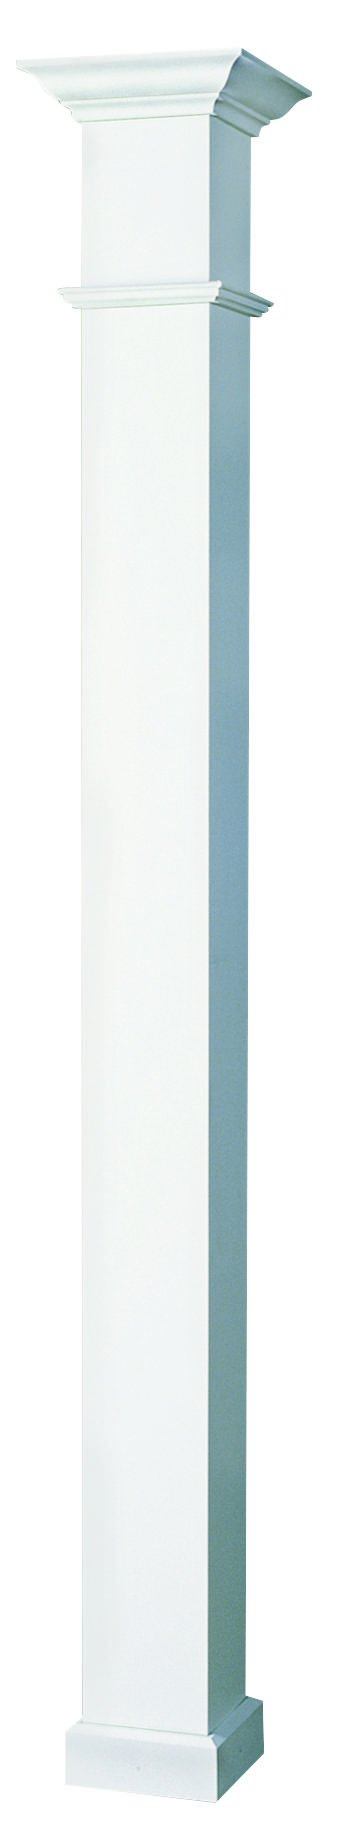 AFCO EA0808ENPSEWEWE 8'' x 8' Endura-Aluminum Wellington Style Column, Square Shaft (Load-Bearing 20,000 lbs), Non-Tapered, Gloss White Finish w/ Capital & Base by Afco